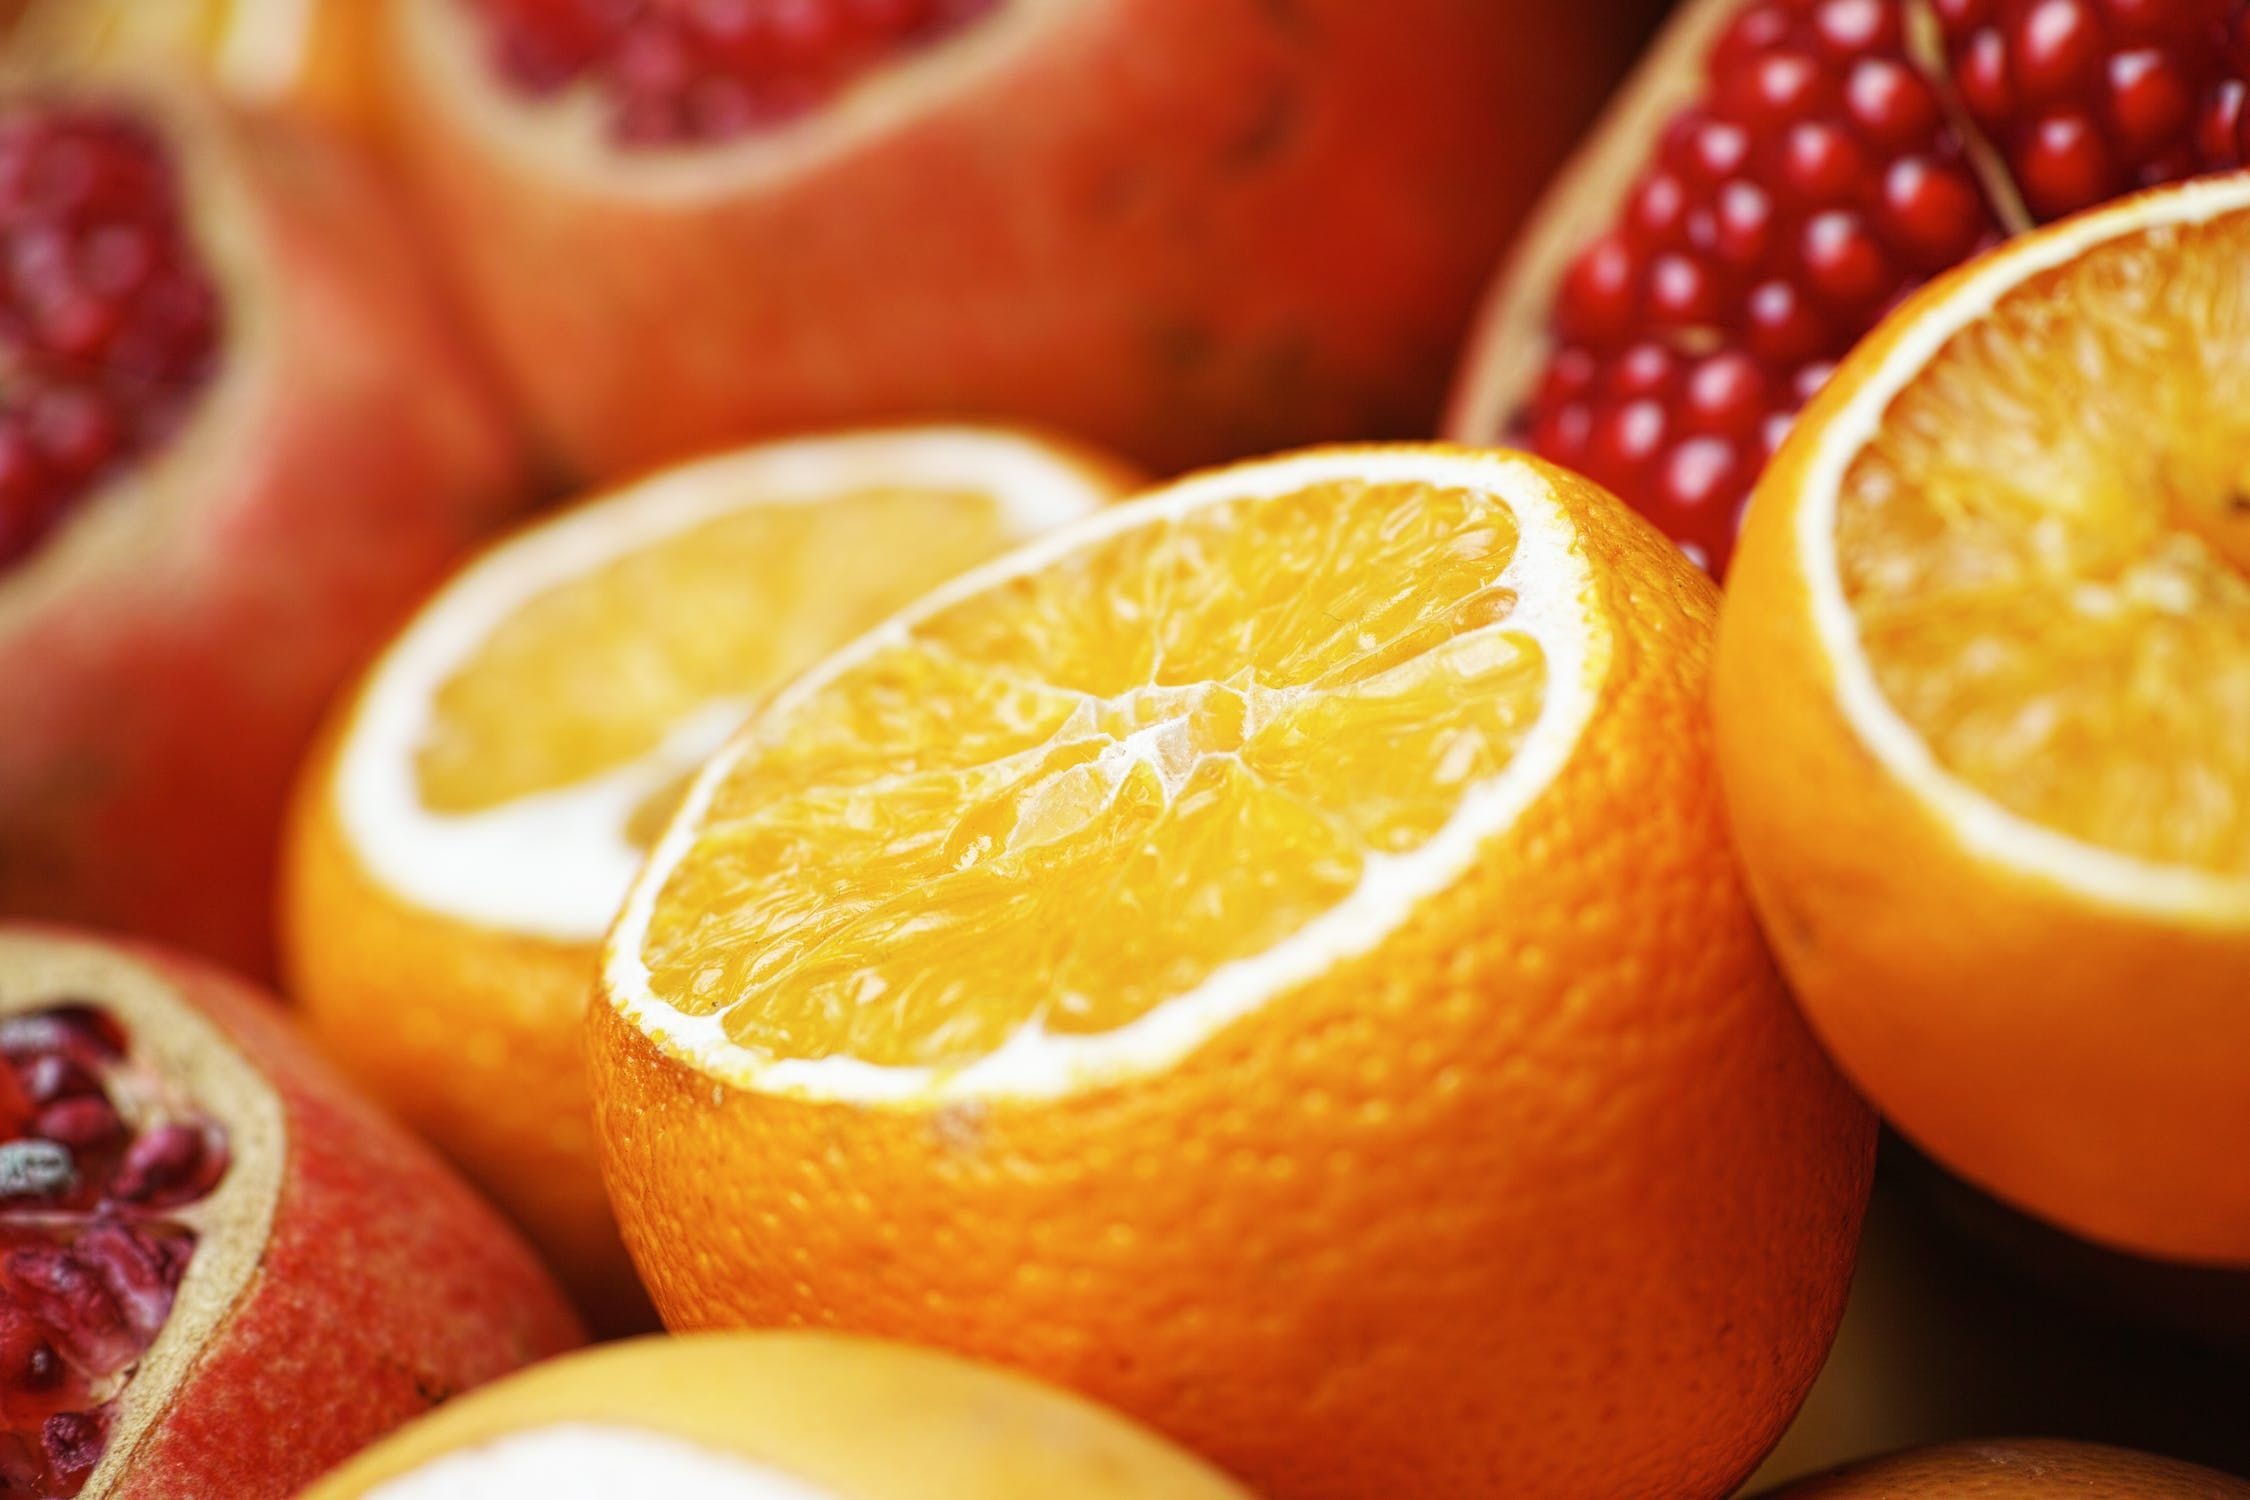 Close-up of oranges and pomegranate